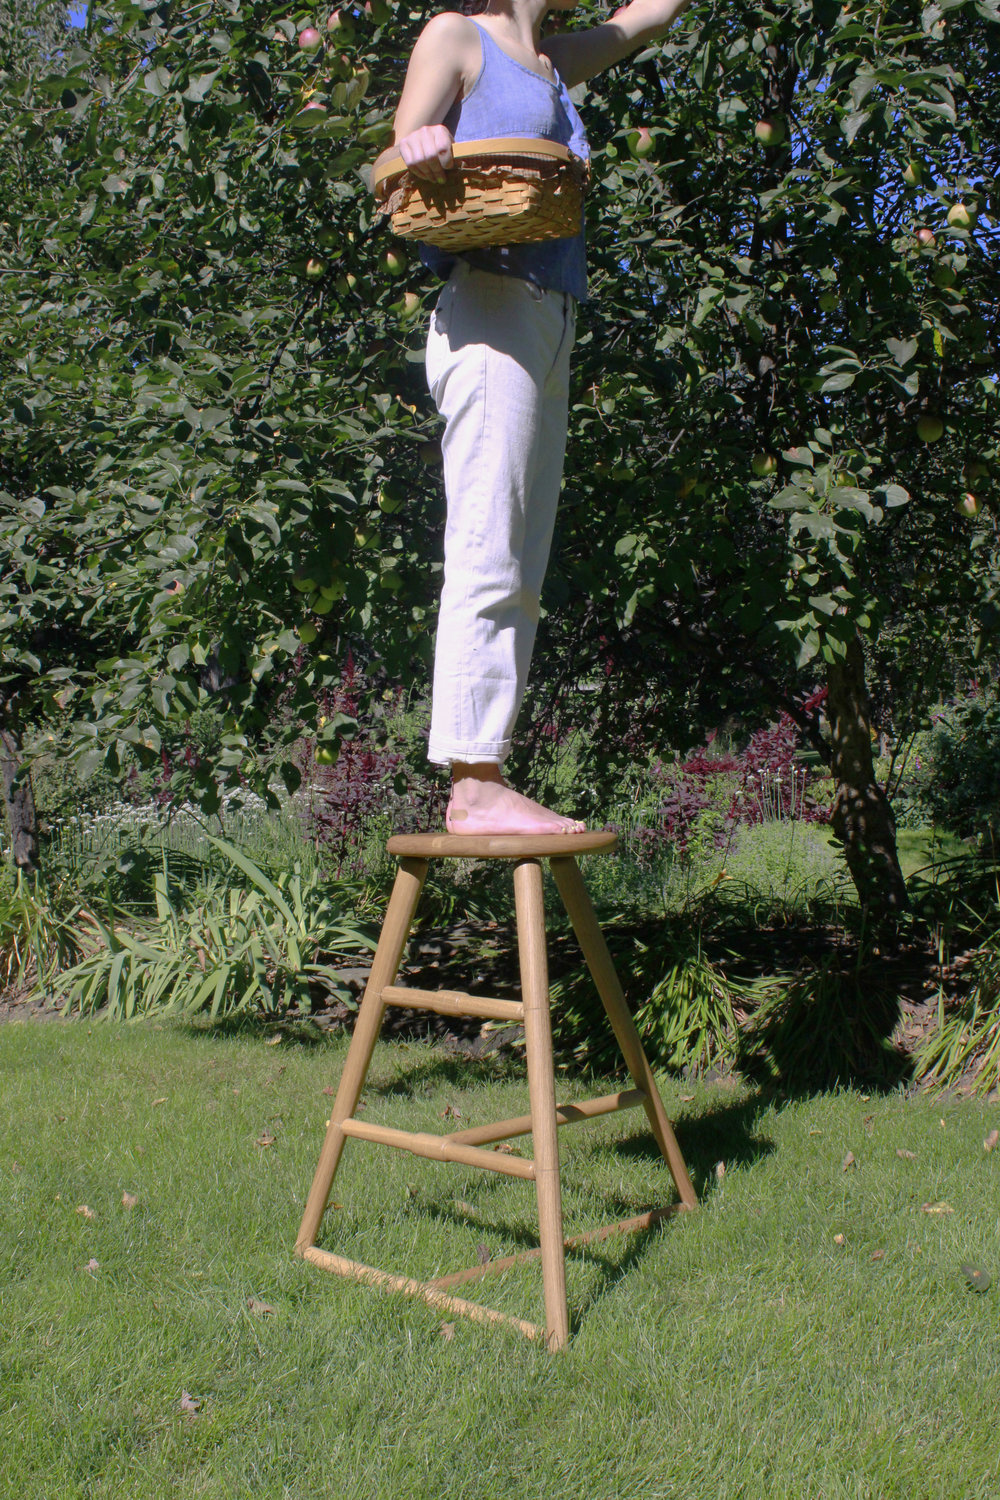 """Apple picking stool is intended for small scale or person apple orchard picking. The three feet of the stool anchor into the soil until the bottom T shaped stretcher is flush with the ground, allowing for greater stability.     Materials: White Oak  H 34"""" x L 28"""" x W 28"""""""